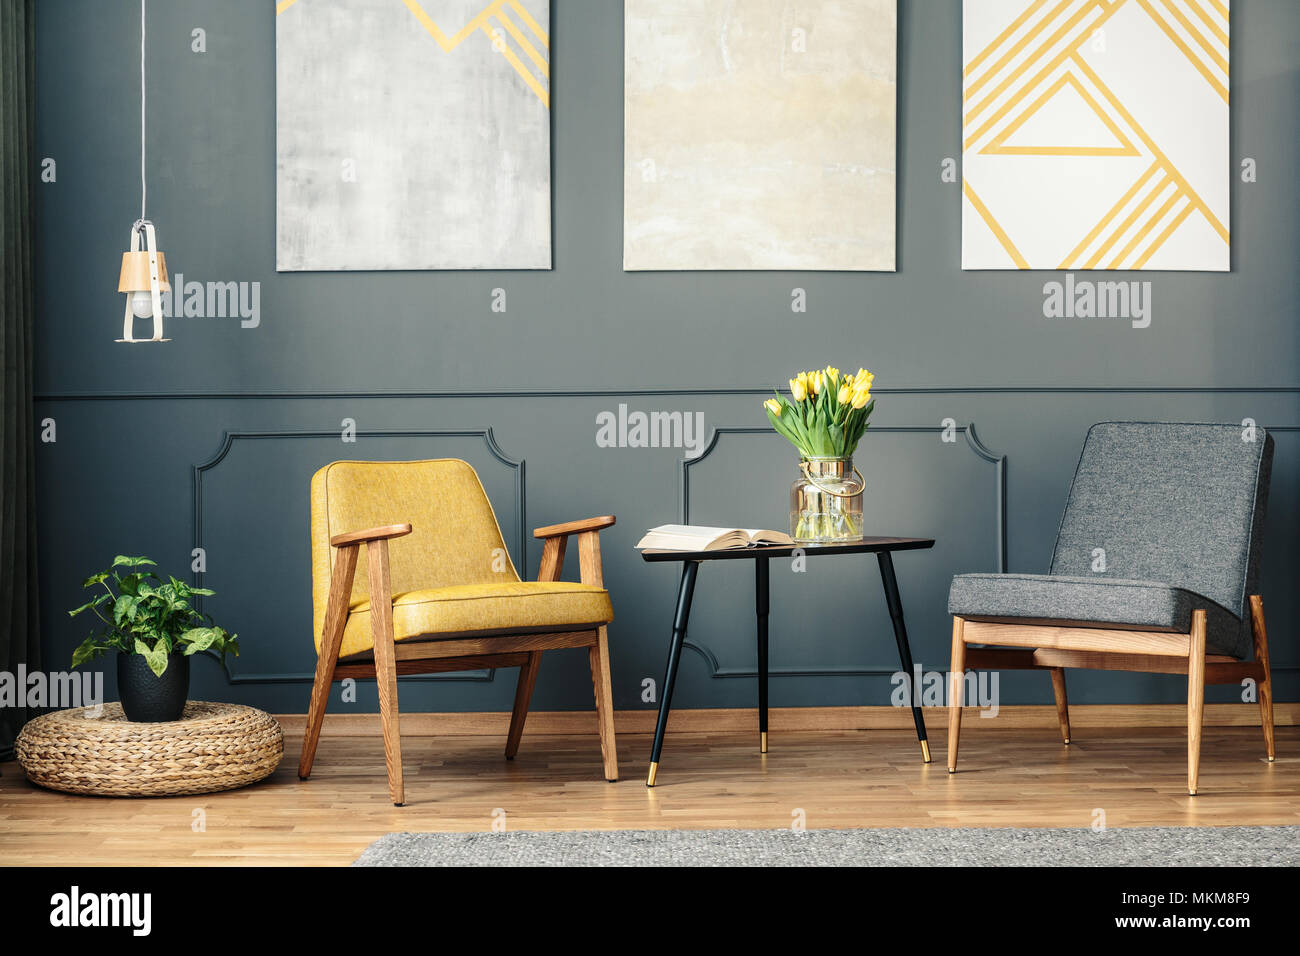 Retro Chairs In Vintage Living Room Interior With Paintings Lamp Plant And Book On The Table Stock Photo Alamy